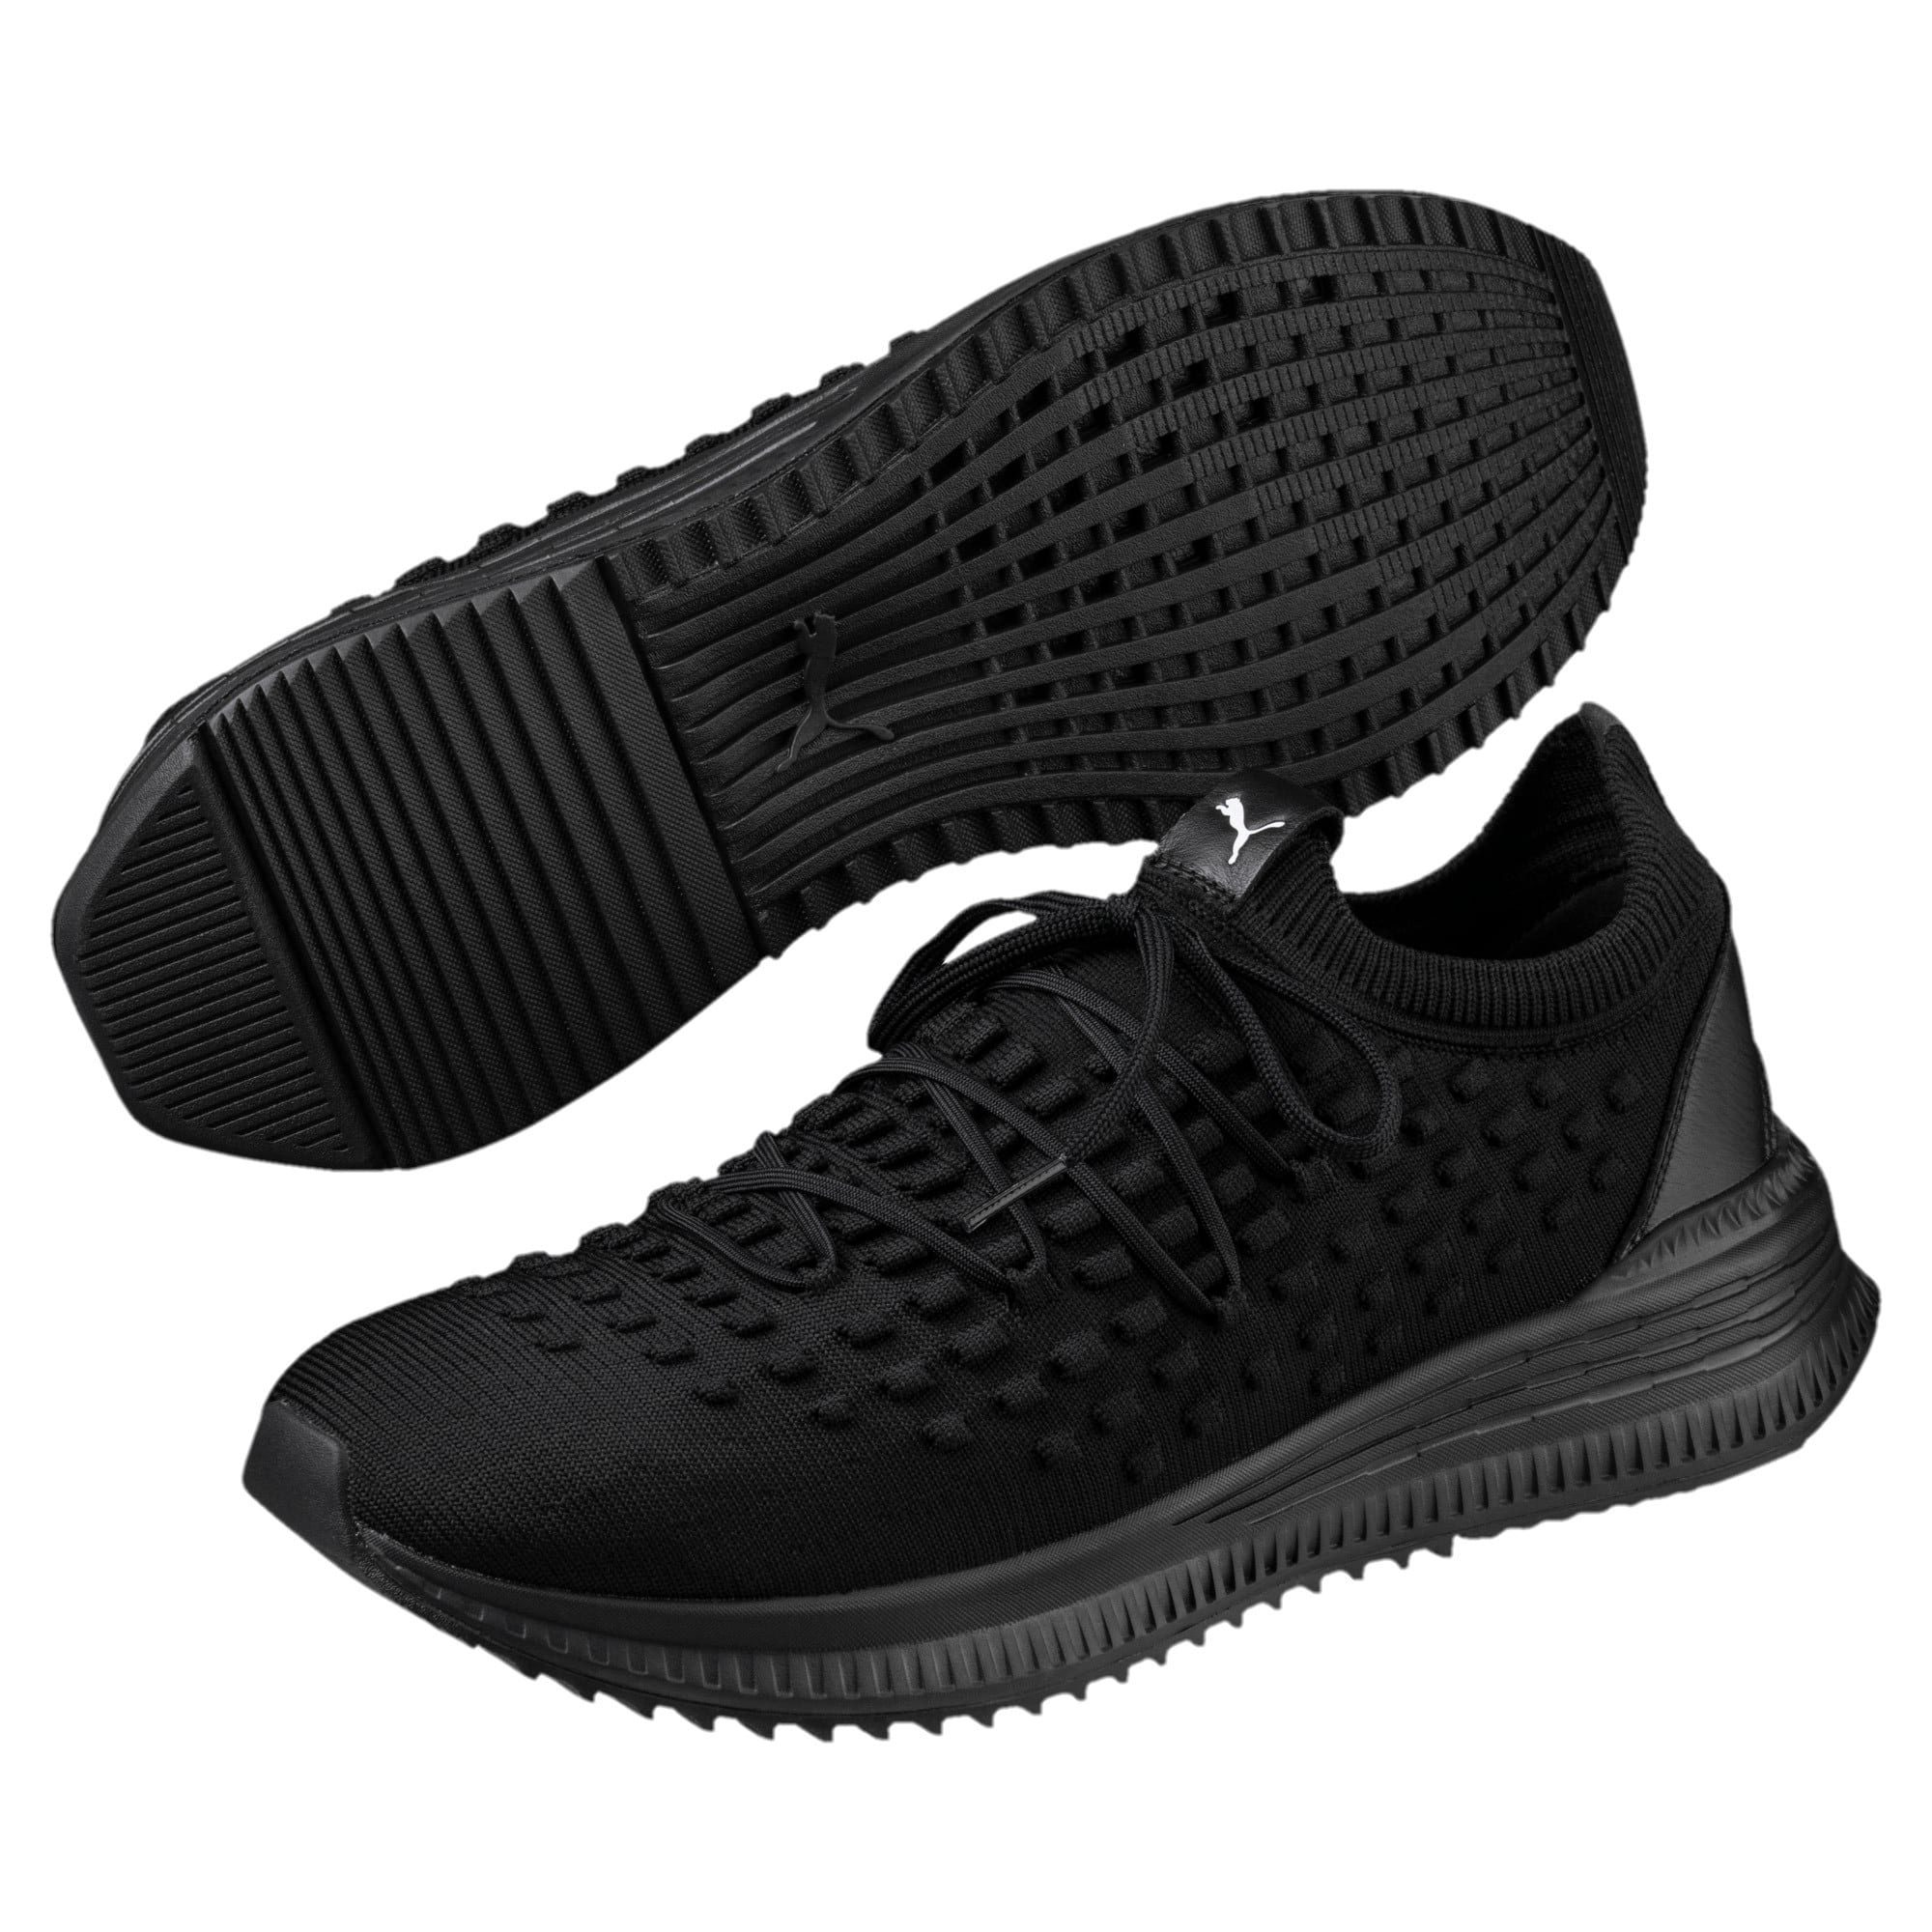 Thumbnail 2 of Evolution AVID FUSEFIT Sneakers, Puma Black-Puma Black-Black, medium